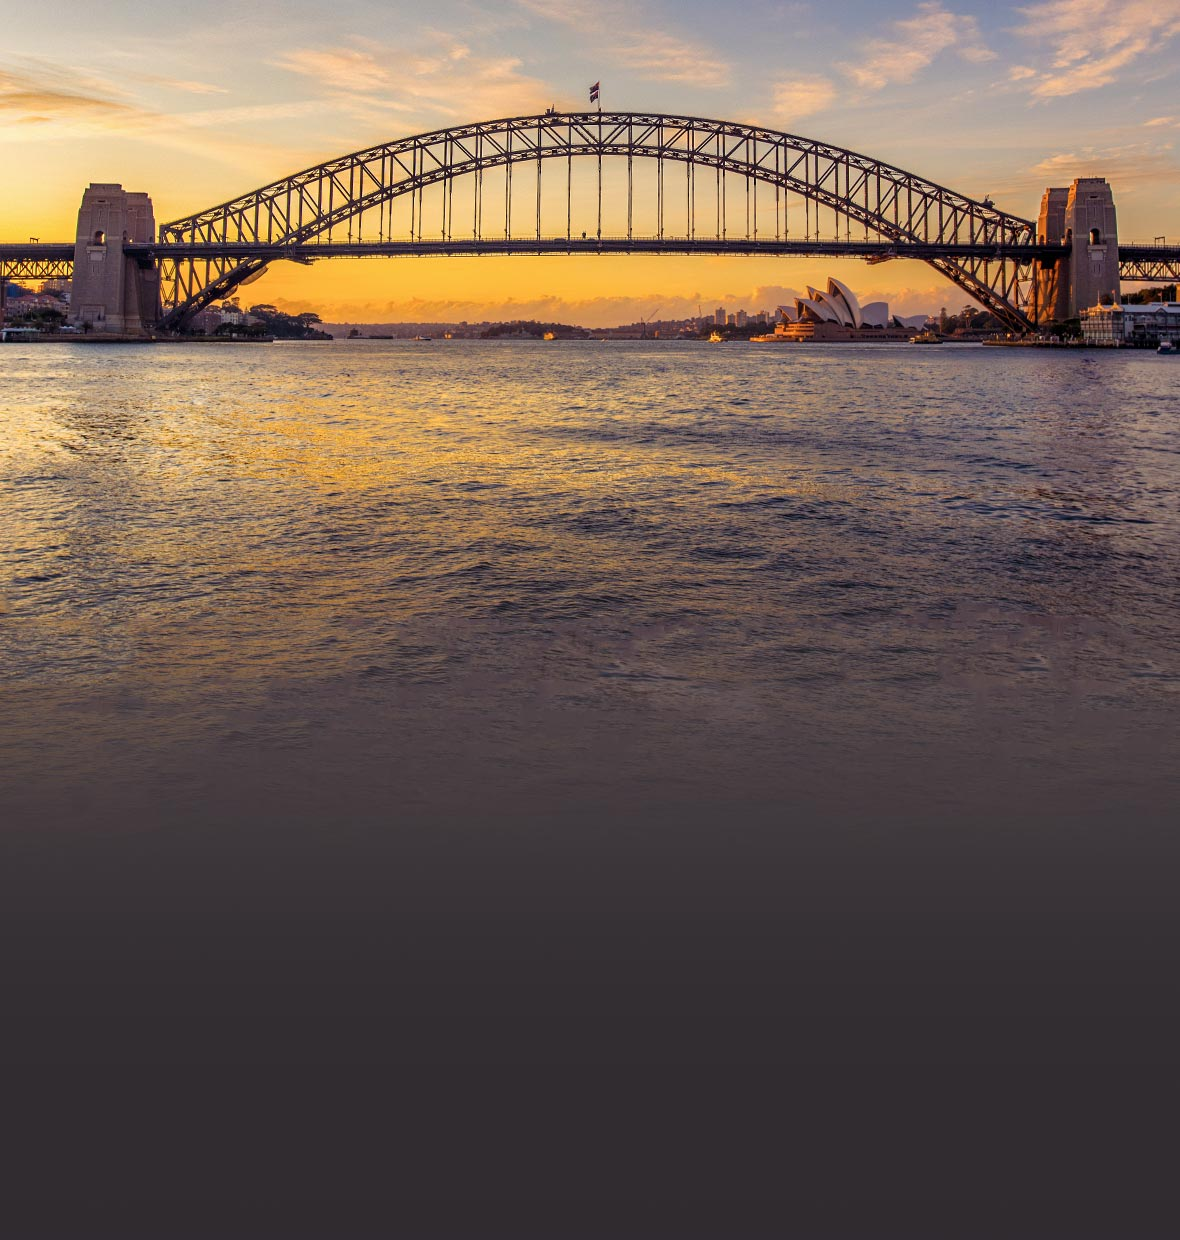 Sydney's iconic Harbour Bridge and the Opera House